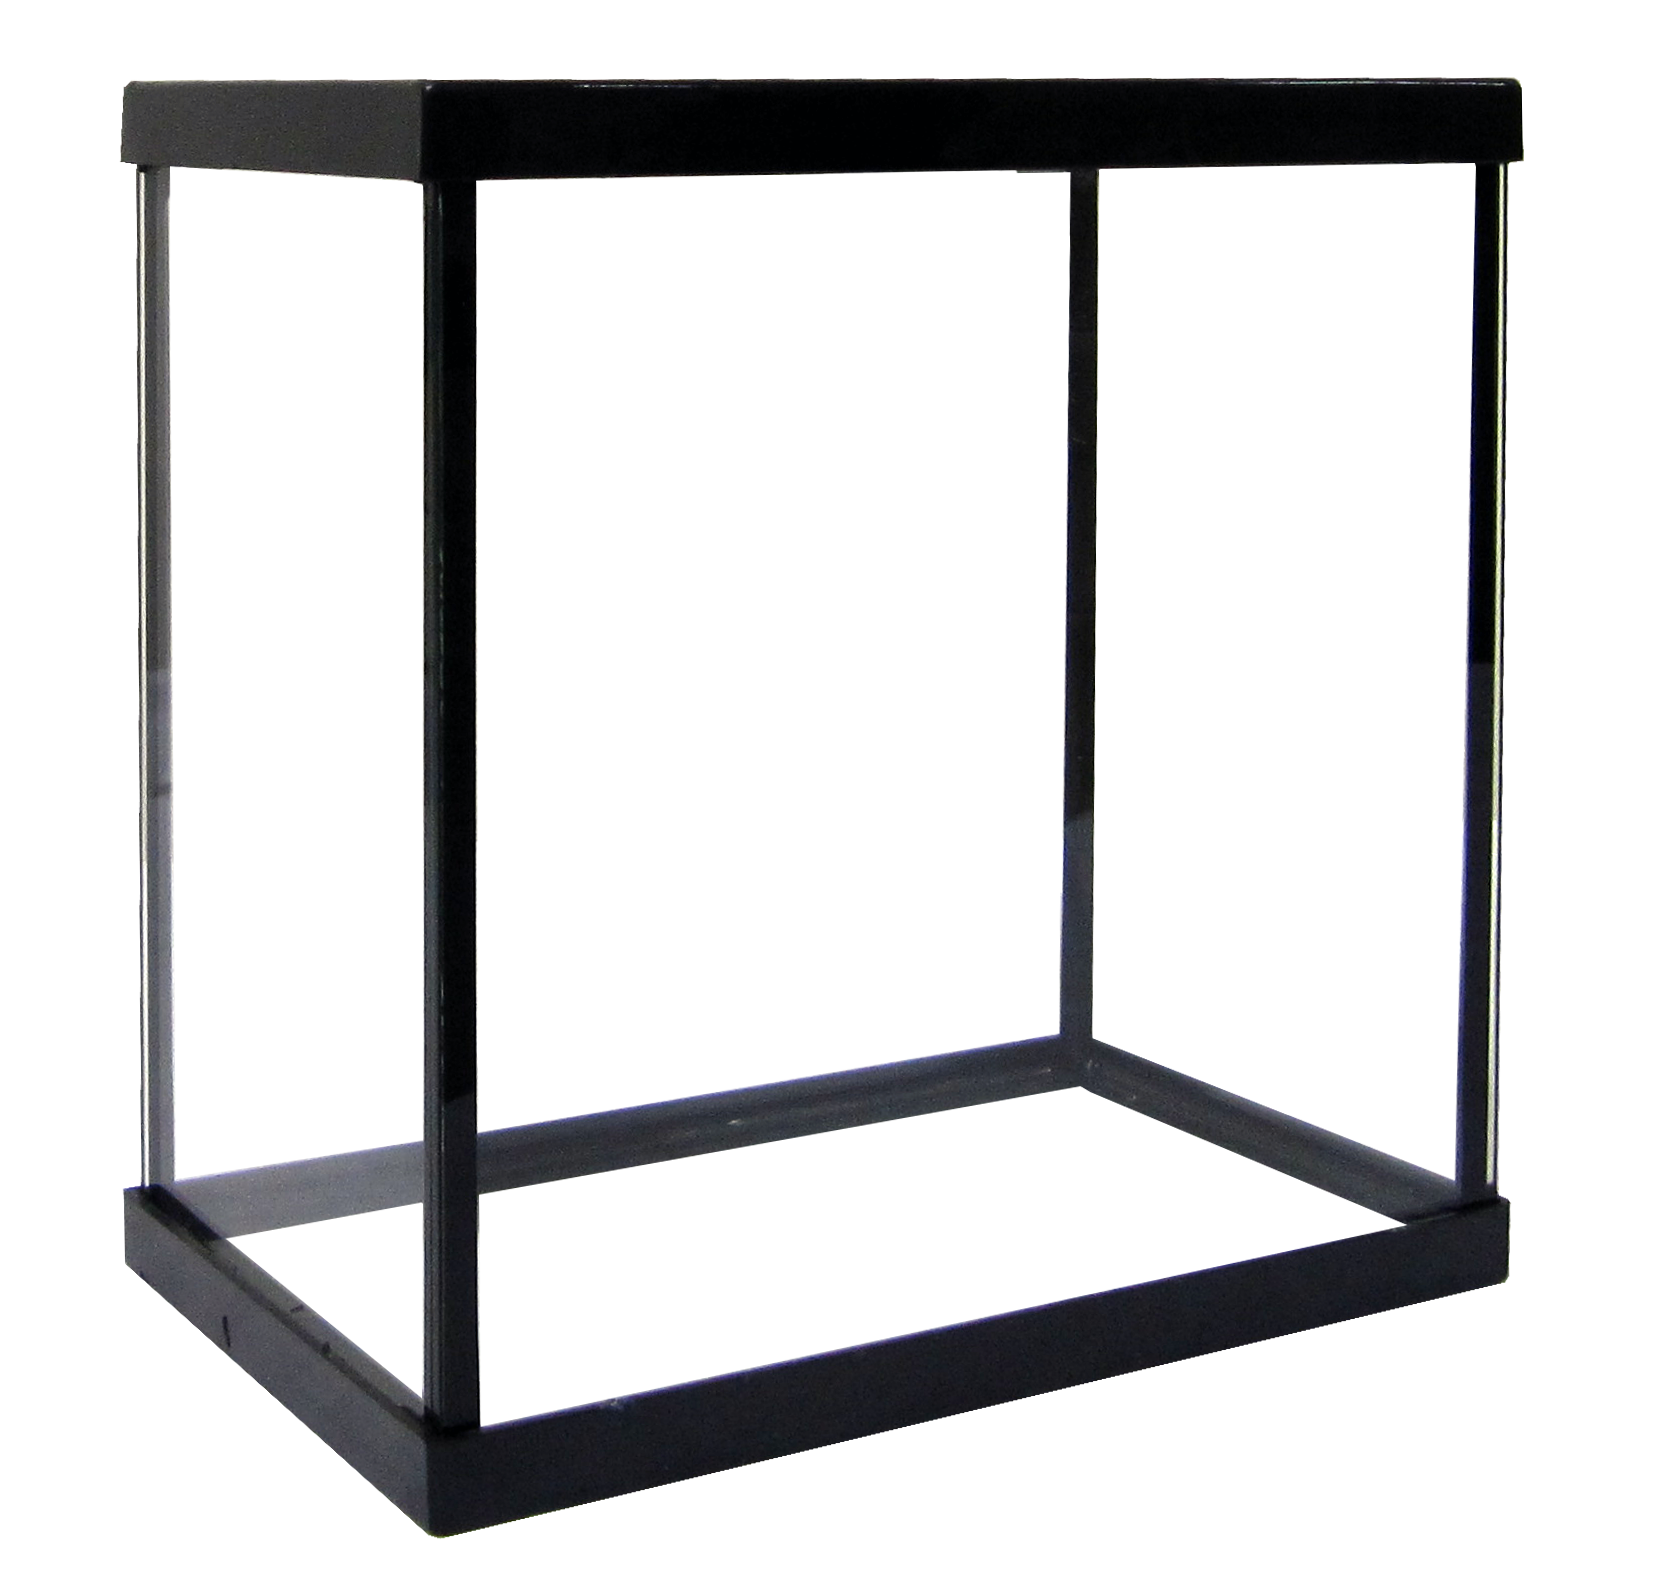 "2 Betta Aquarium - 8X4X8""   SKU#: AM11002  UPC#: 7-49729-11002-6  Product Dimension: 8.38""x4.88""x8.50""  Capacity: Approximately 1.1 gallons  Weight: 3.3 lbs"